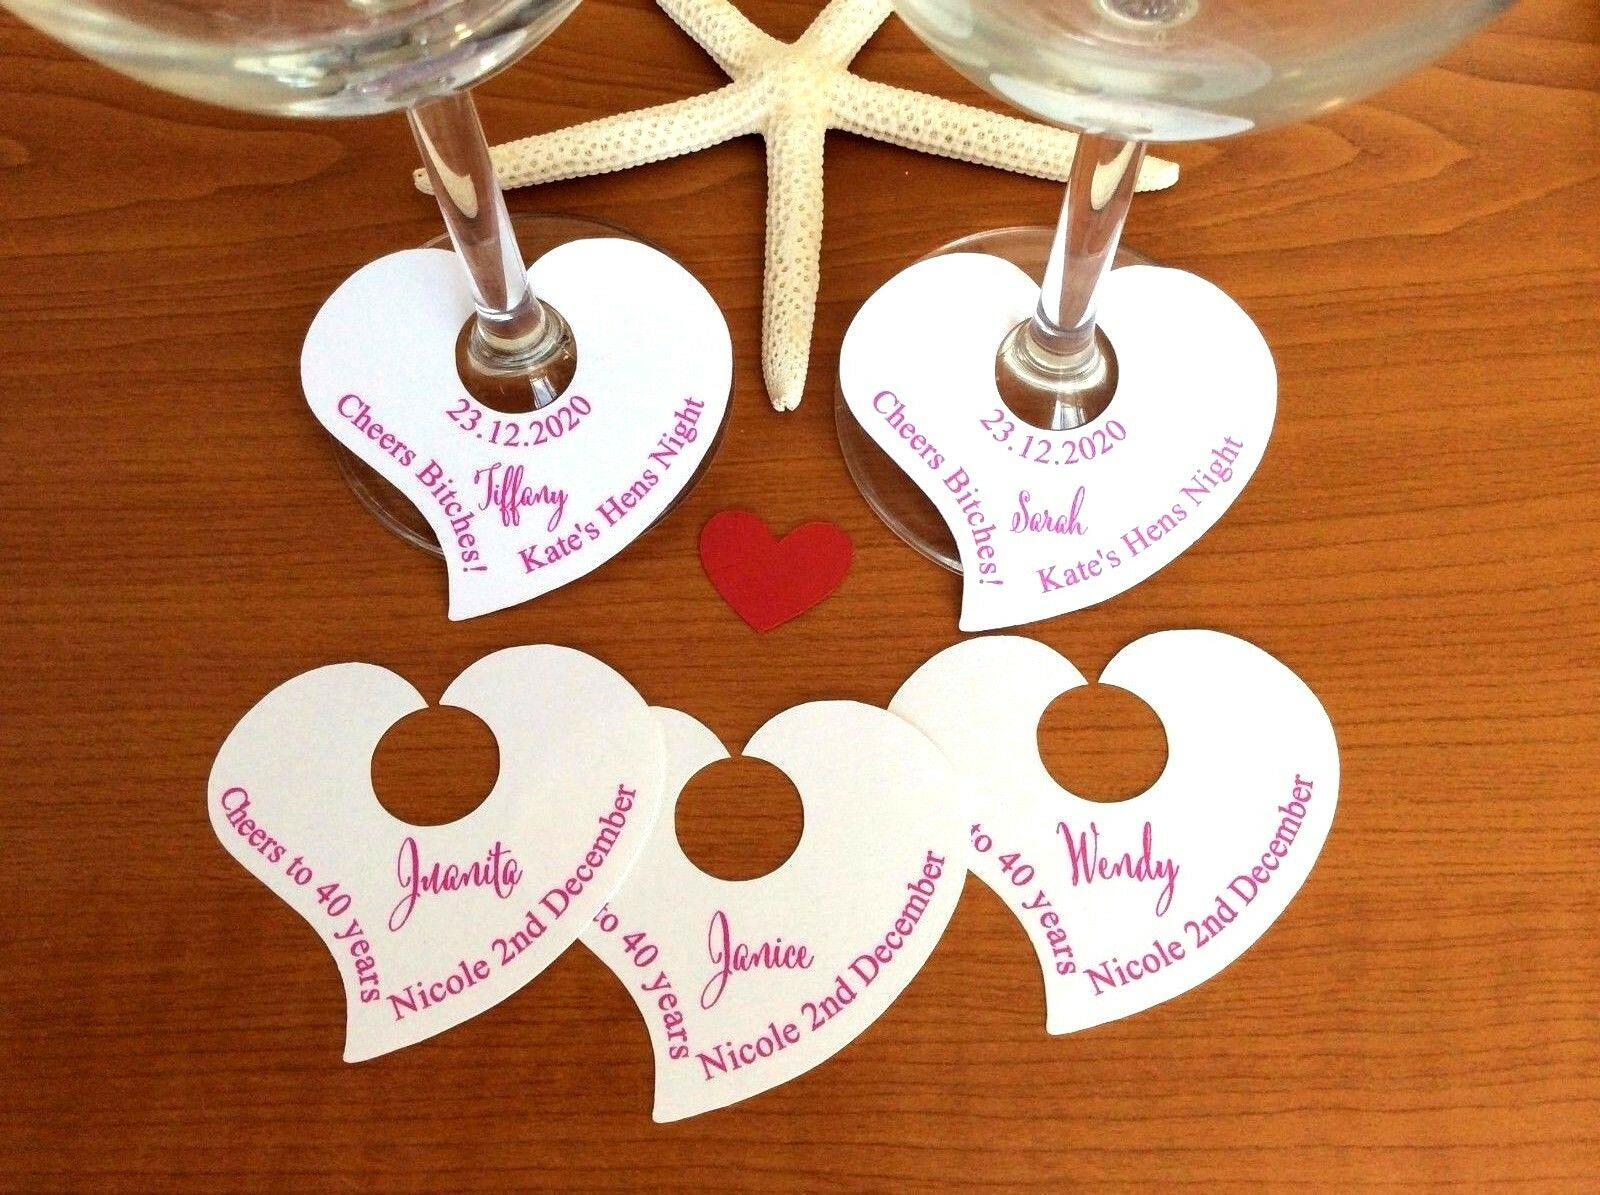 Wine Glass Name Tag In 2020 Wine Glass Tags Personalized Wine Glass Wine Charms